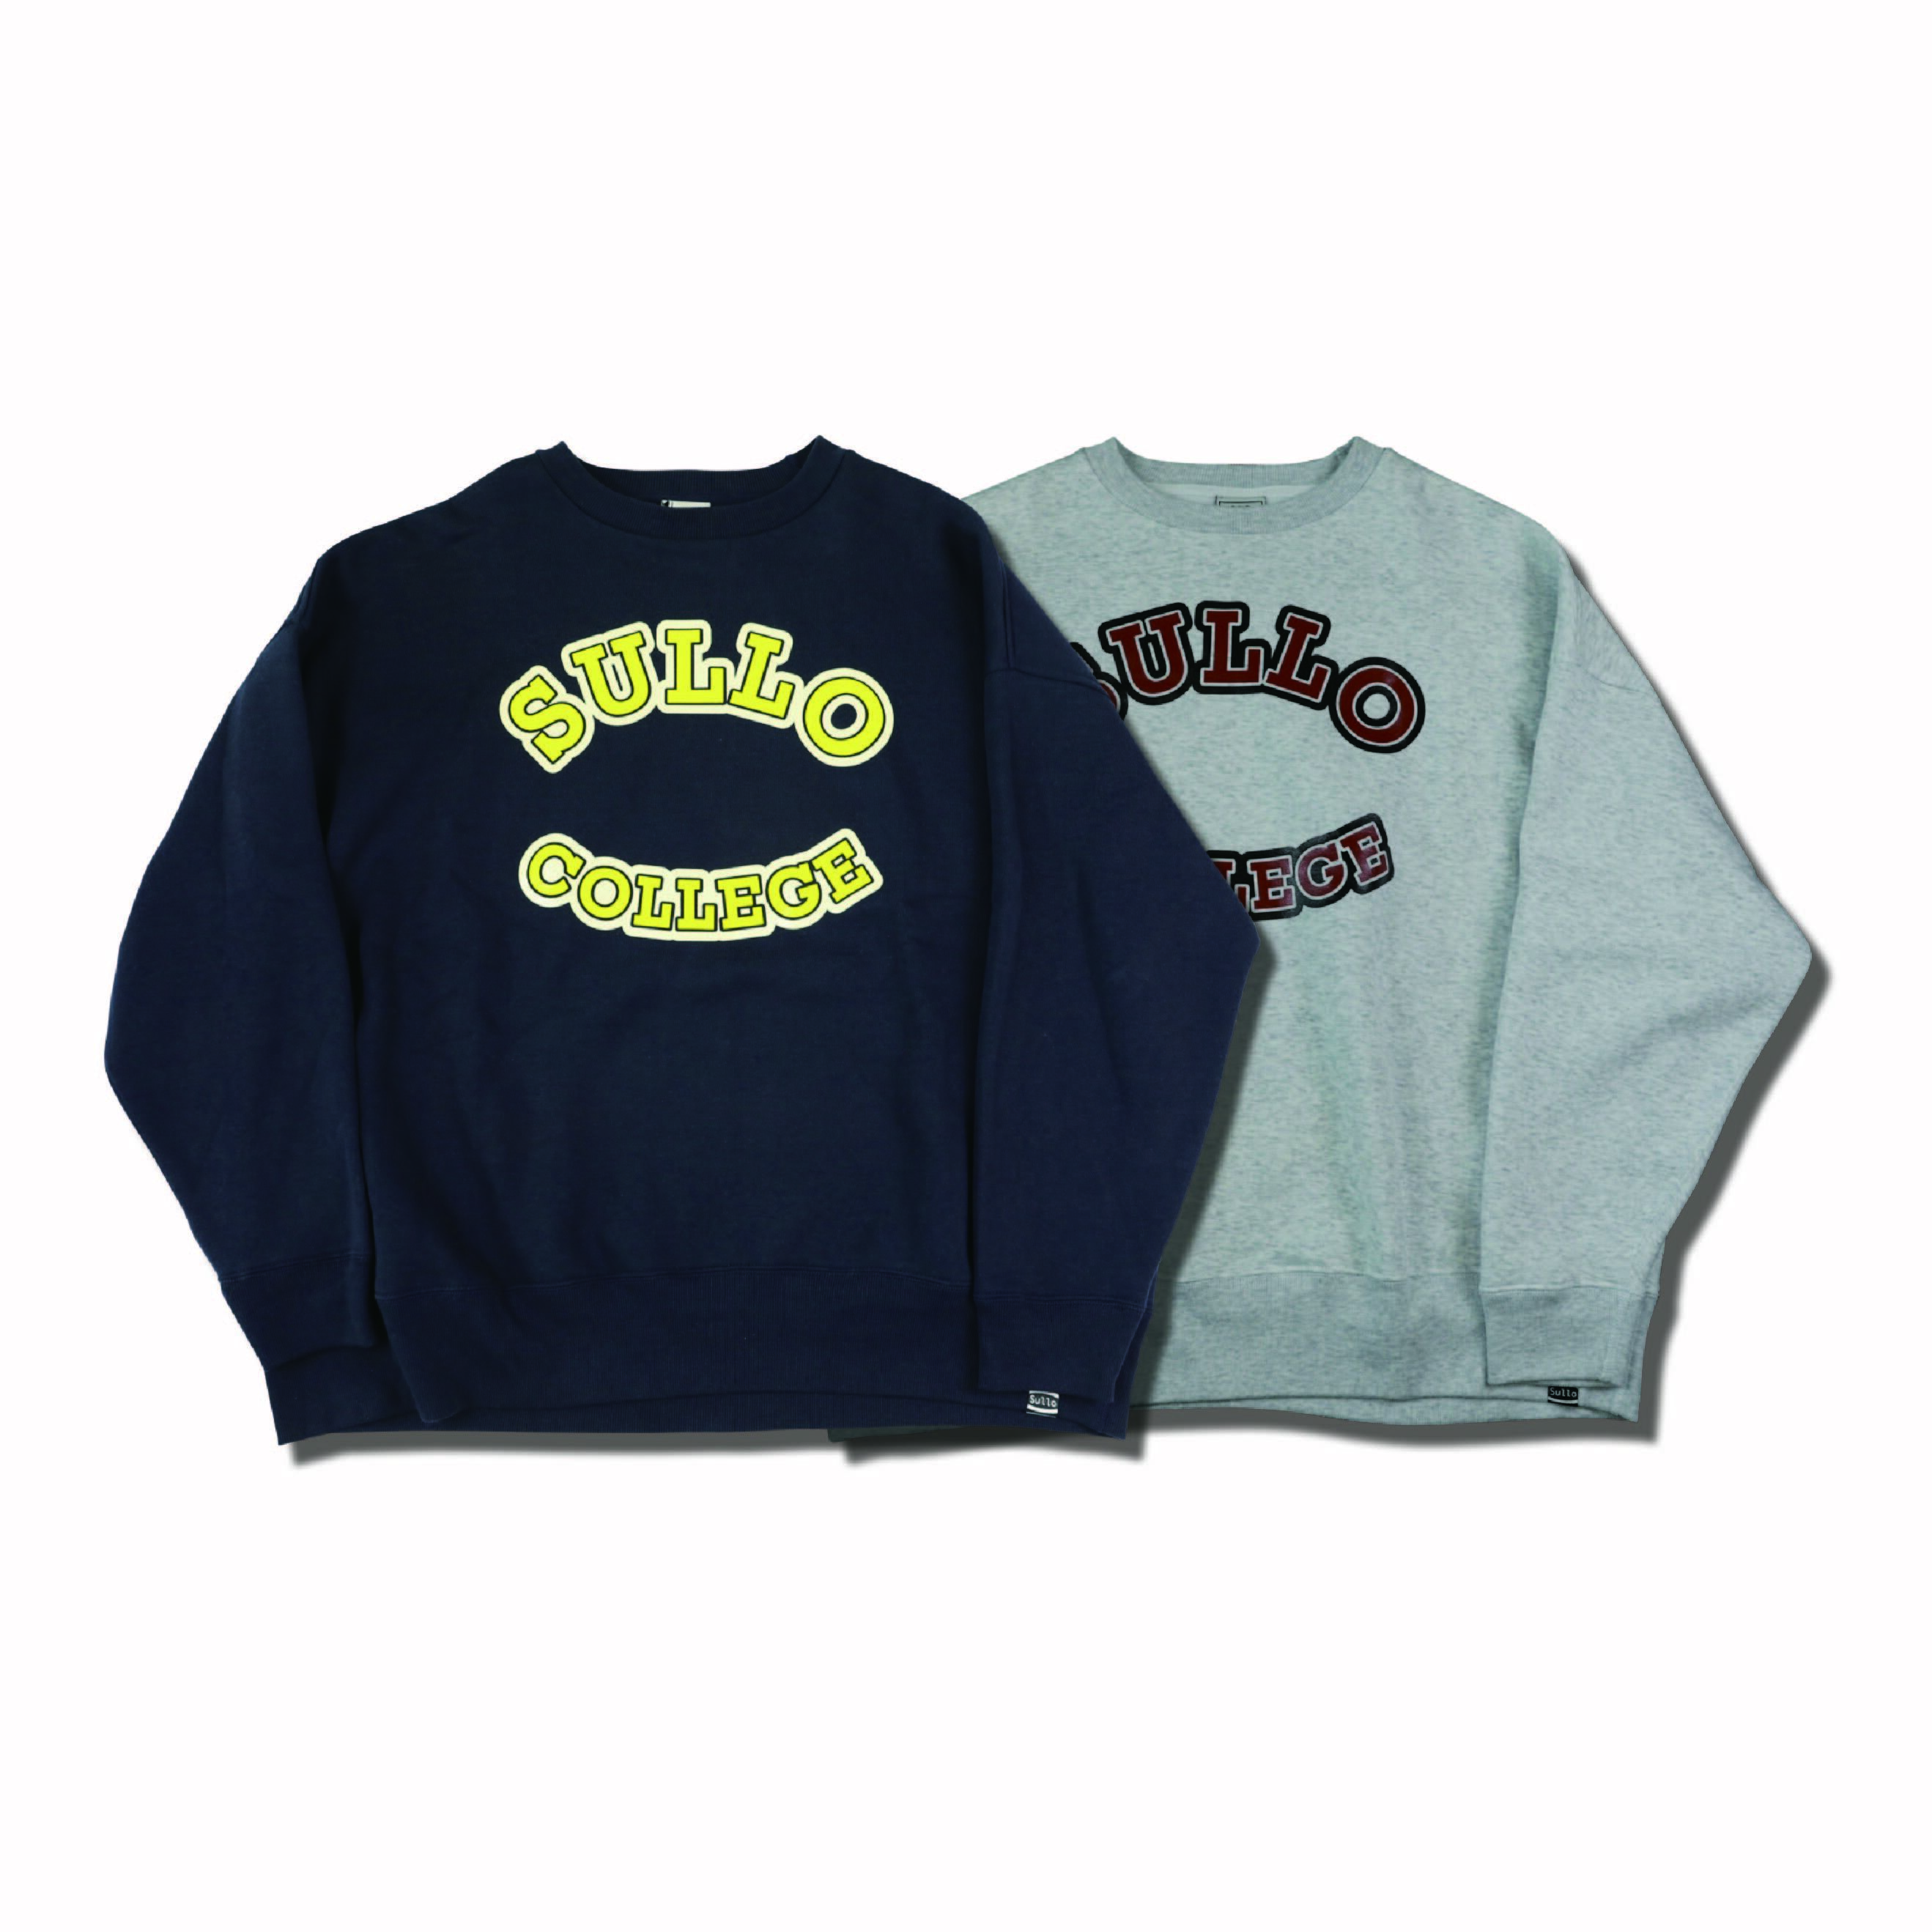 BIG SILHOUETTE SWEAT SHIRT (全2カラー)